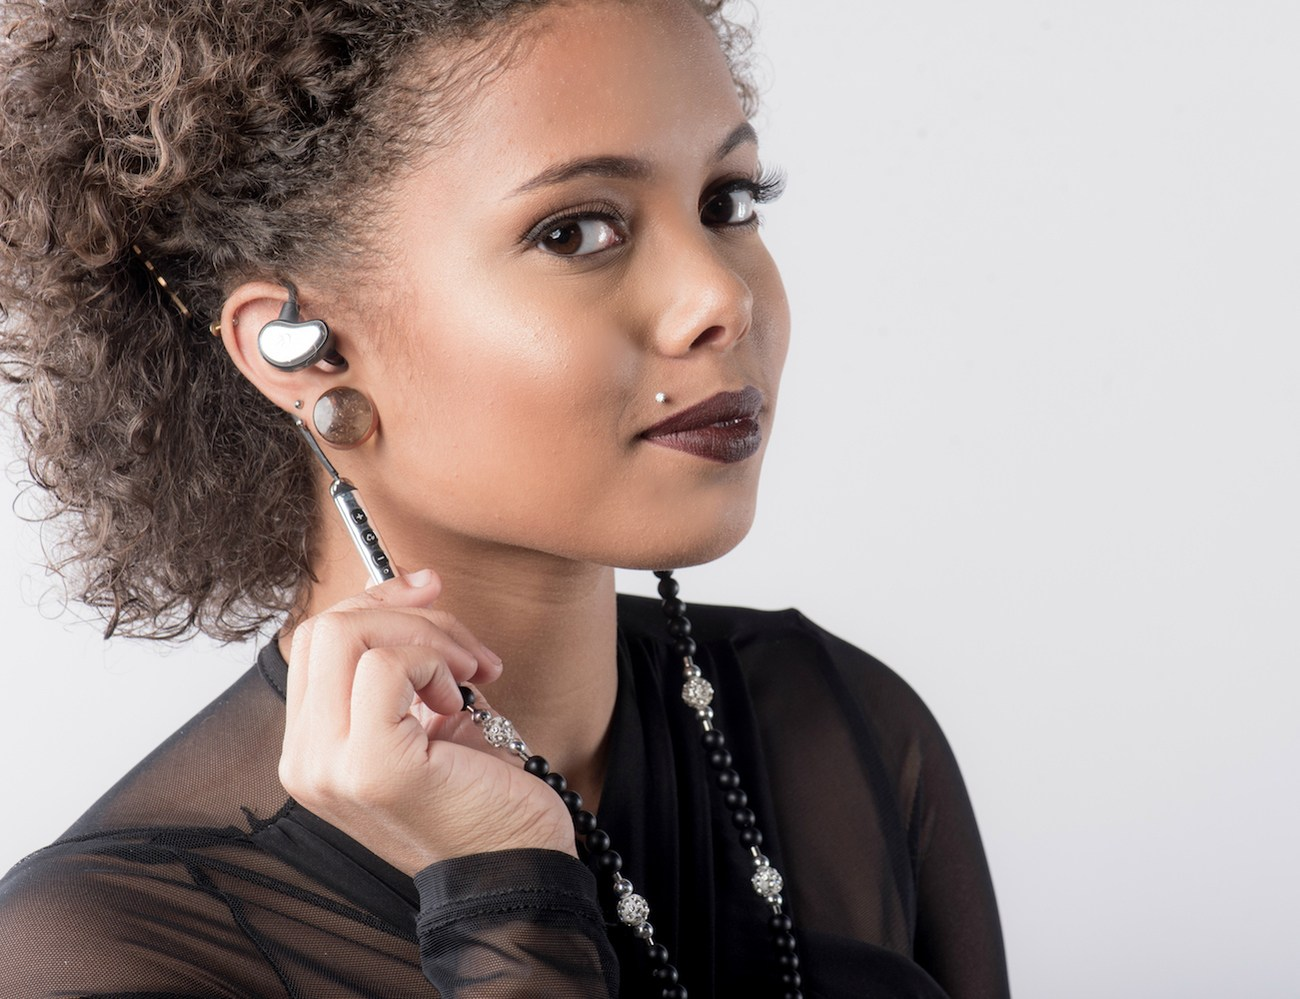 GemPhones Wireless Necklace Earphones